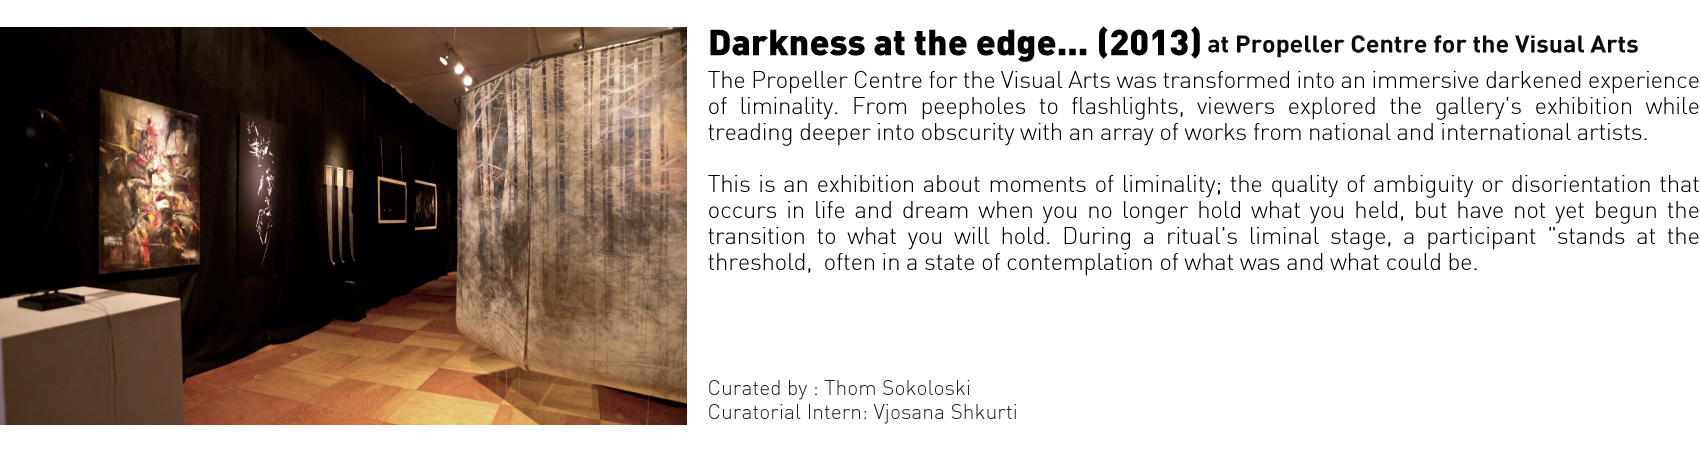 exhibitions-web-darkness-at-the-edge